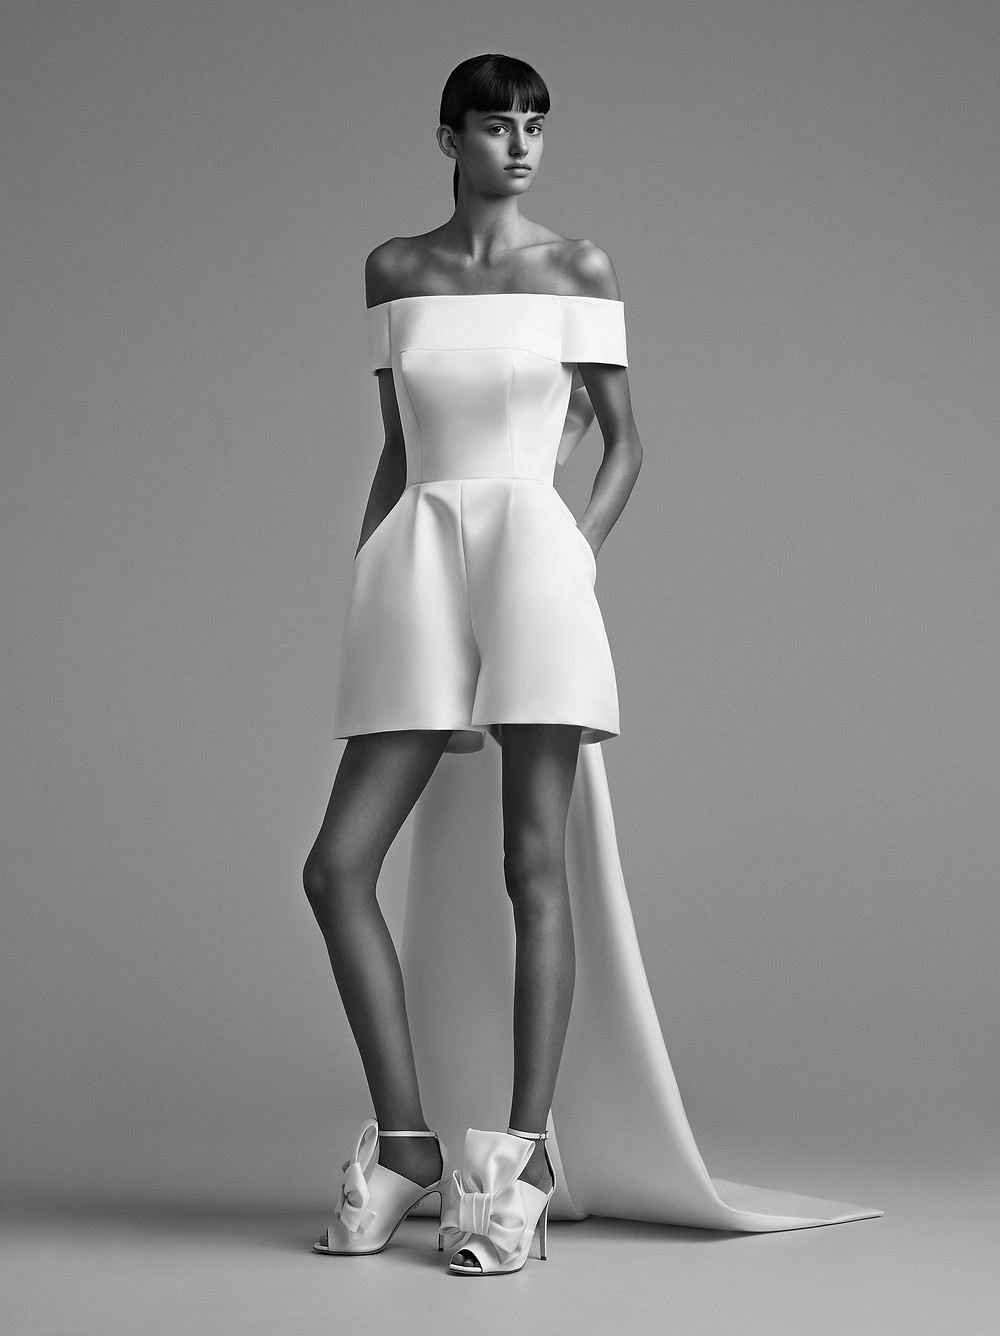 A Viktor & Rolf off the shoulder wedding playsuit with a cape